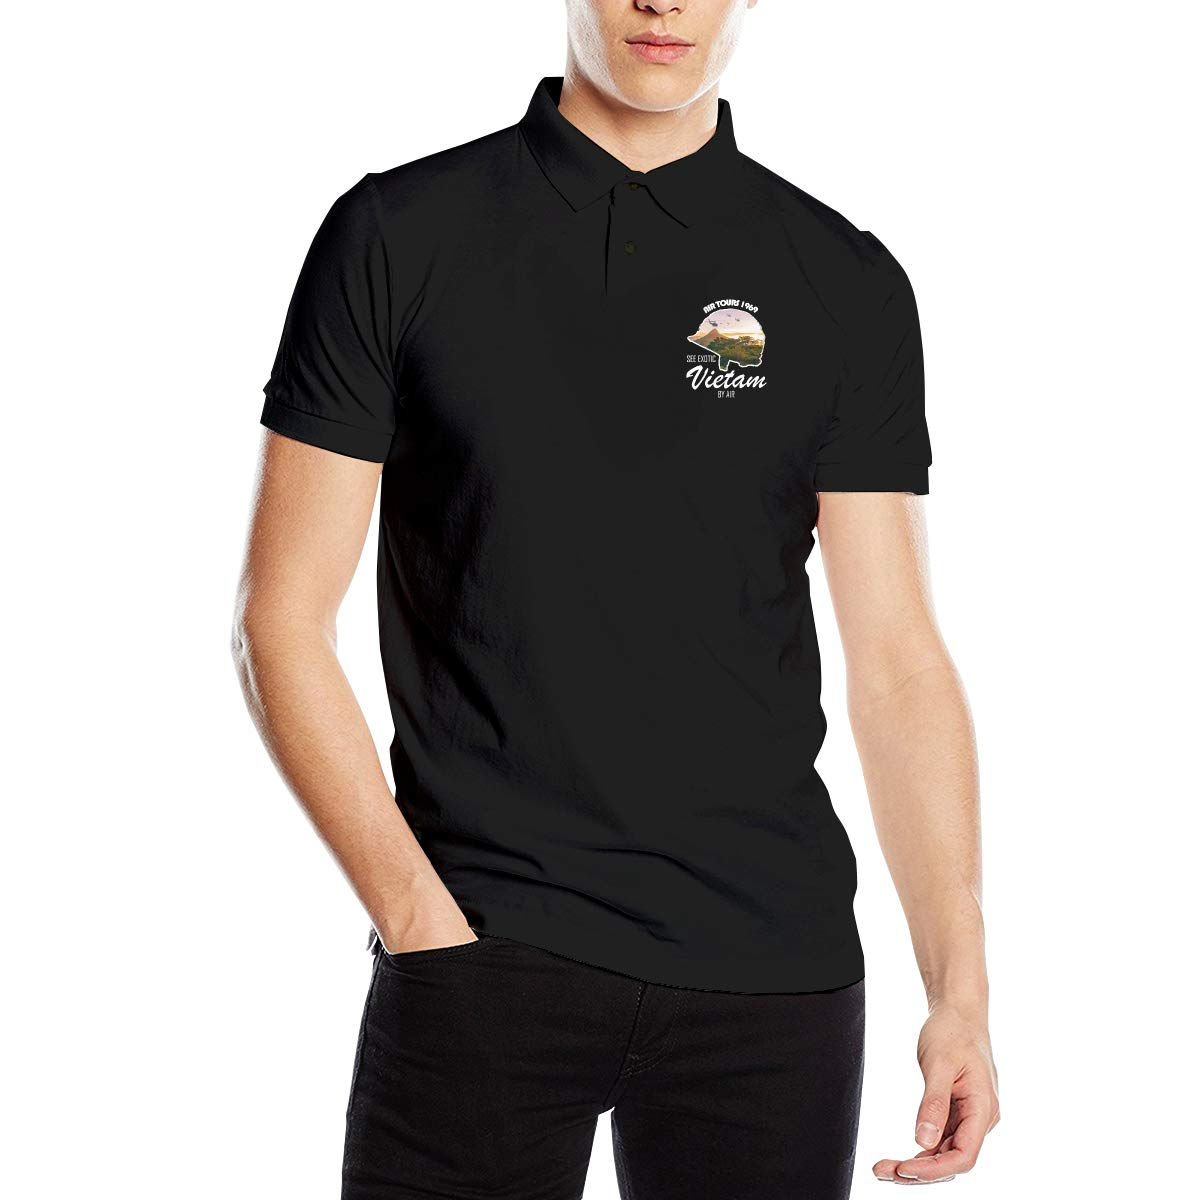 You Know And Good Retro Army See Exotic Vietnam Mens Regular-Fit Cotton Polo Shirt Short Sleeve